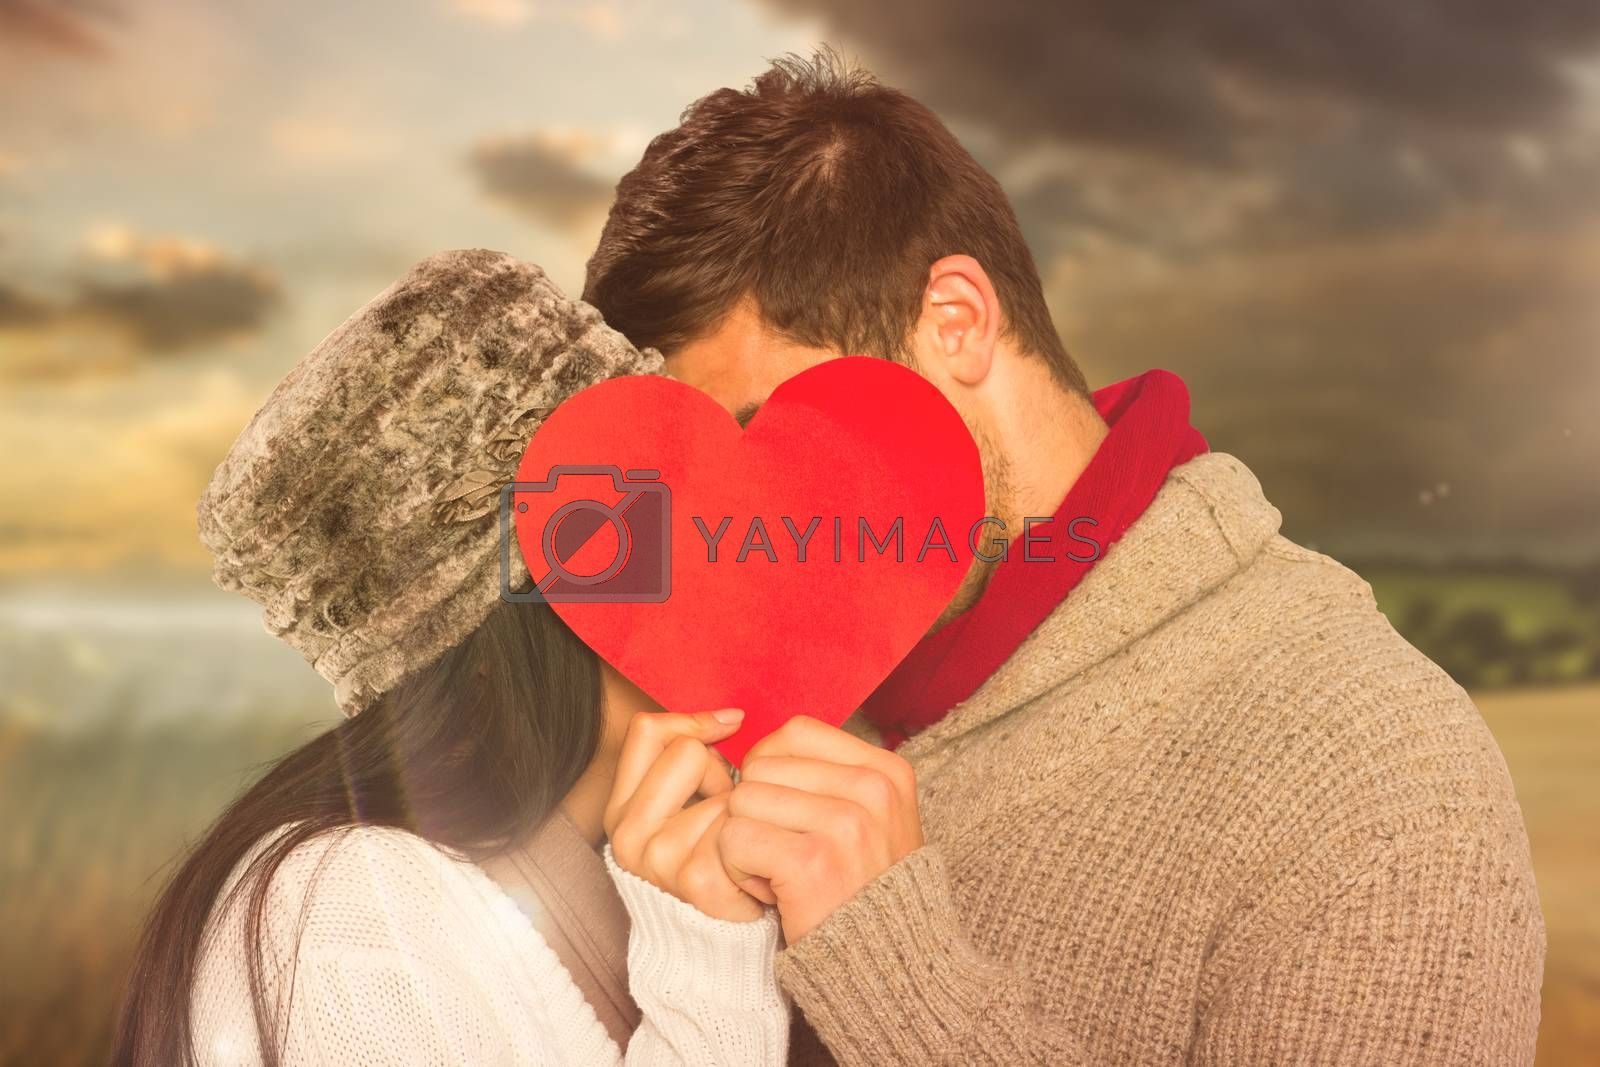 Young couple kissing behind red heart against country scene